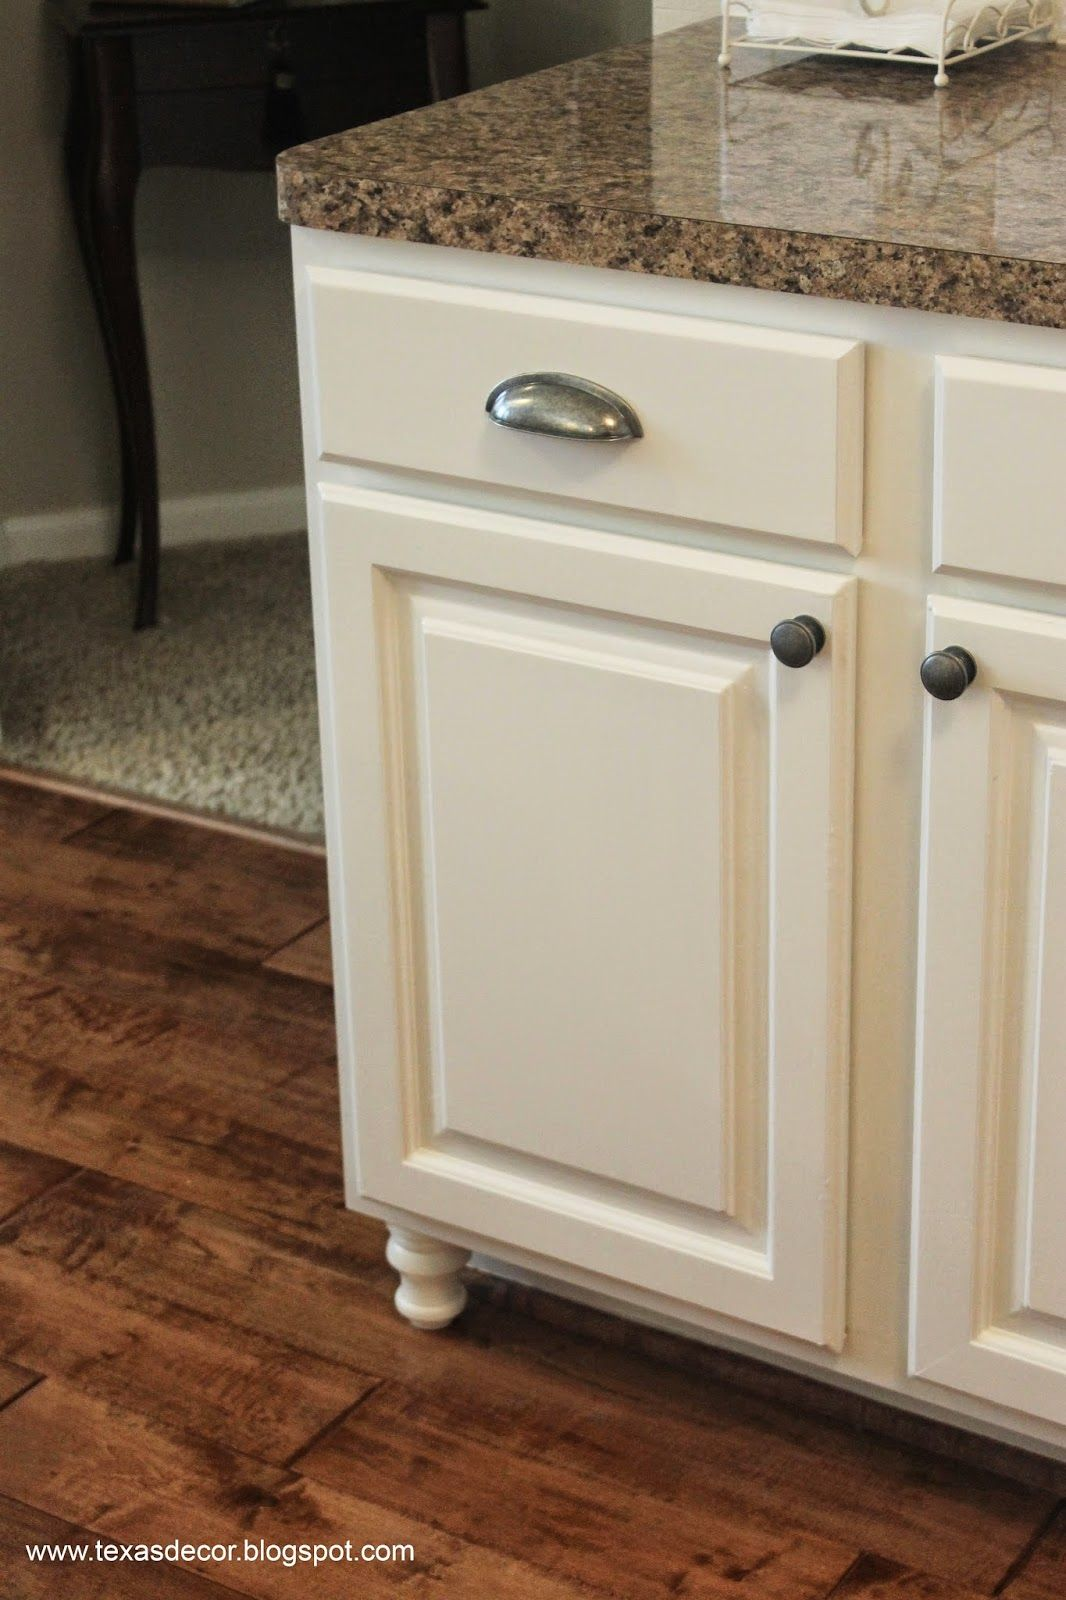 adding furniture feet to kitchen cabinets | For the Home | For the ...